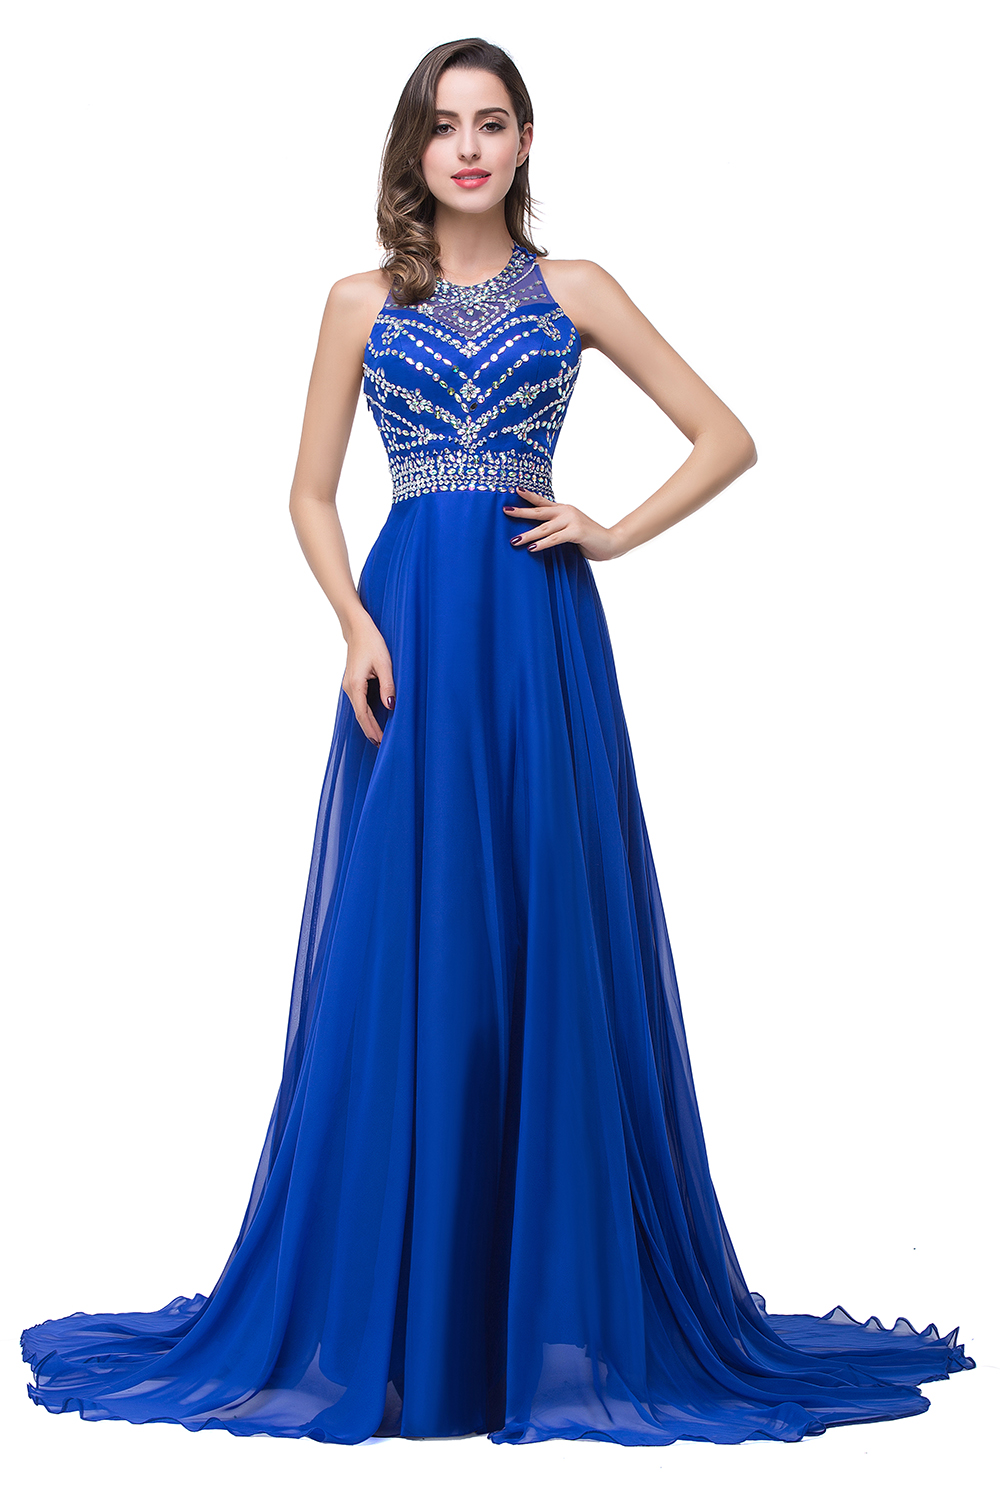 Newest Royal Blue Chiffon 2020 Prom Dress A-line Beadings